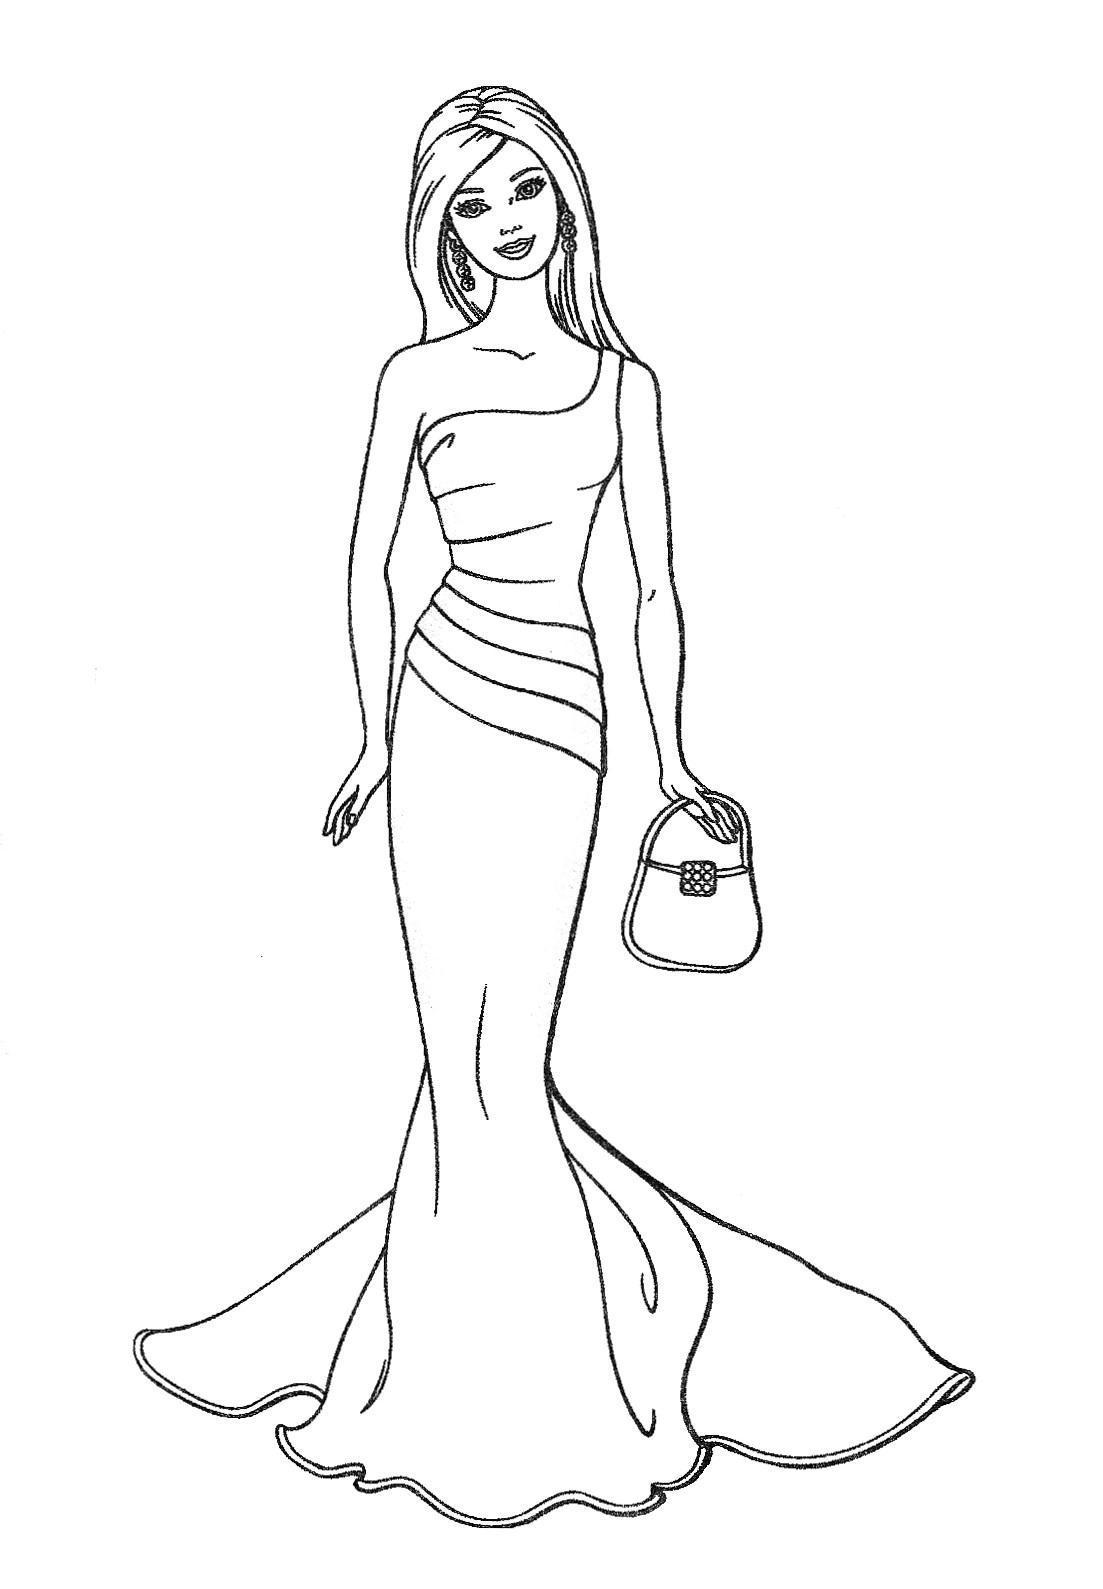 barbie girls coloring pages - photo#34